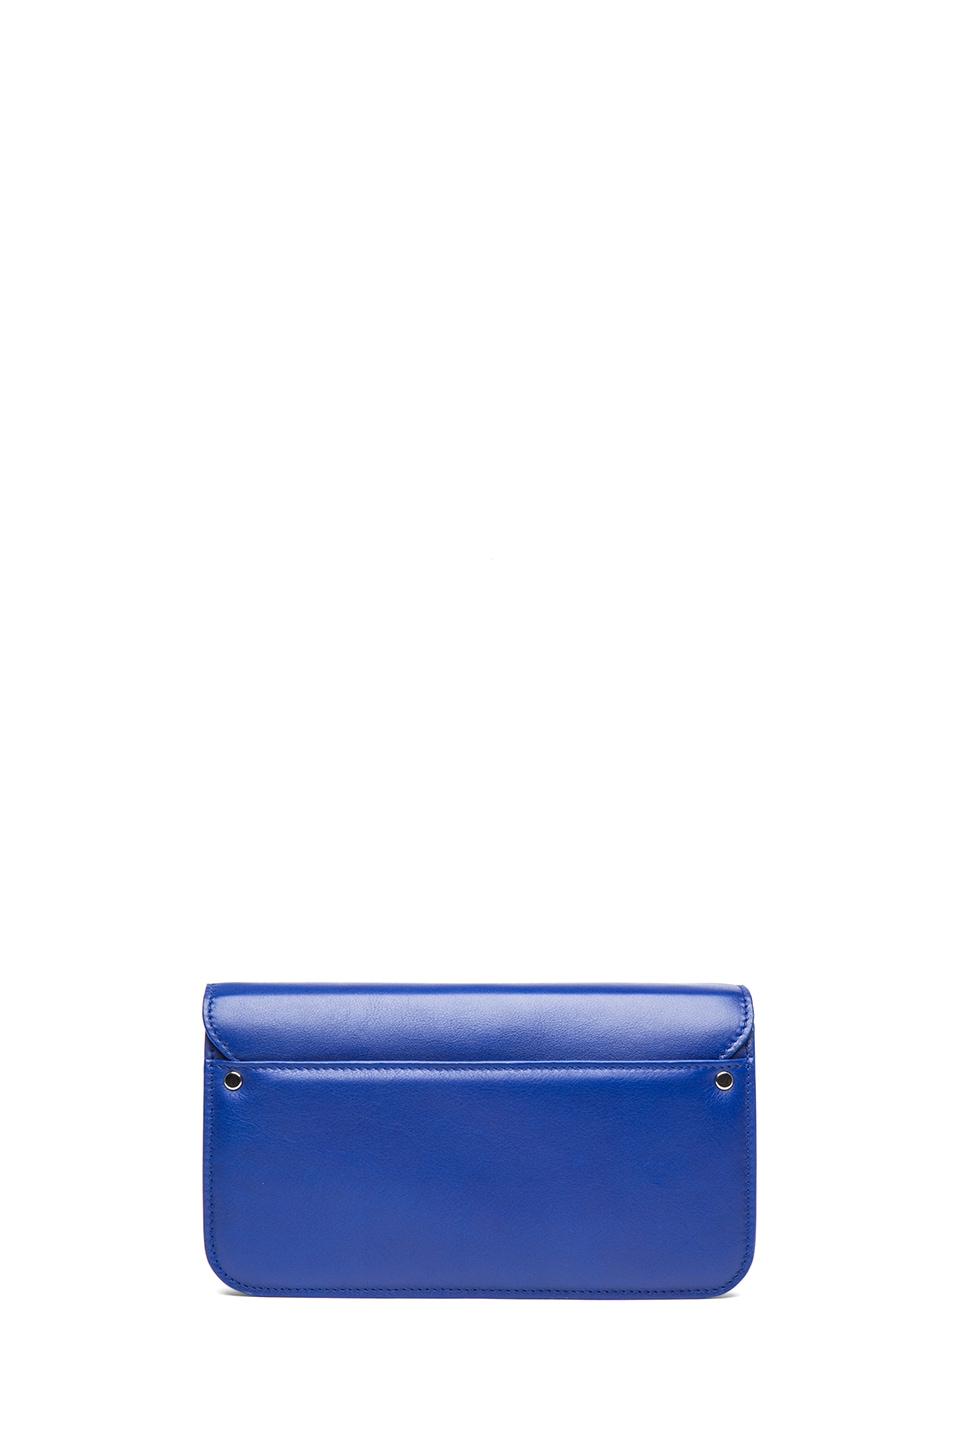 Image 2 of Proenza Schouler PS11 Smooth Calf Leather Chain Wallet in Royal Blue